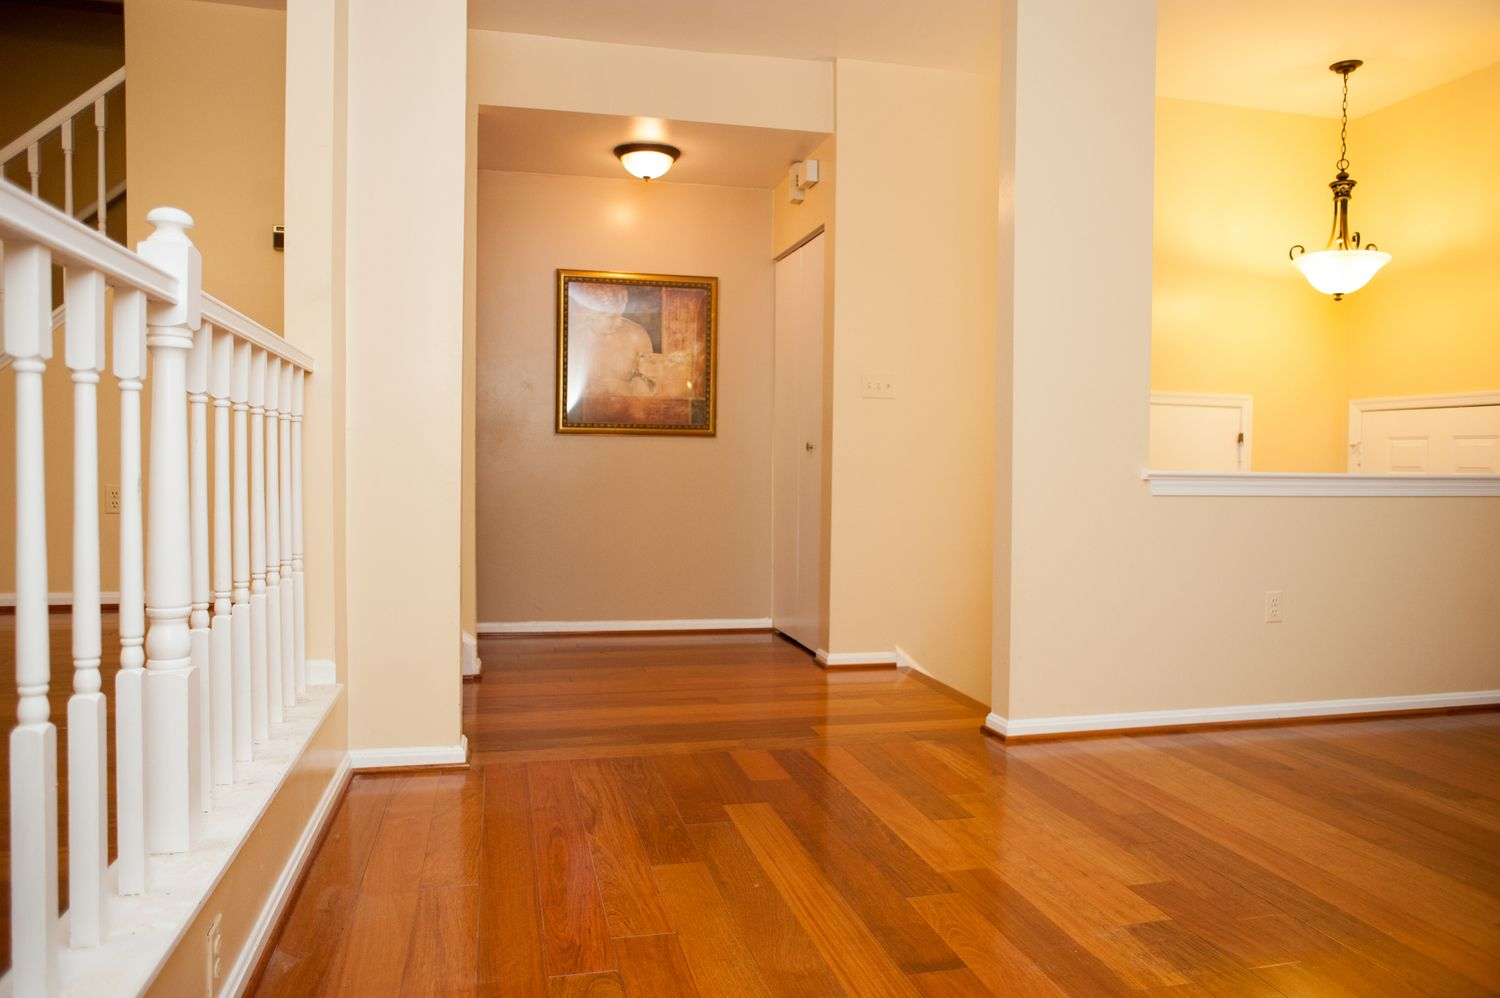 Floor Renovation Silver Spring MD Additions And Other Services - Kitchen remodeling silver spring md